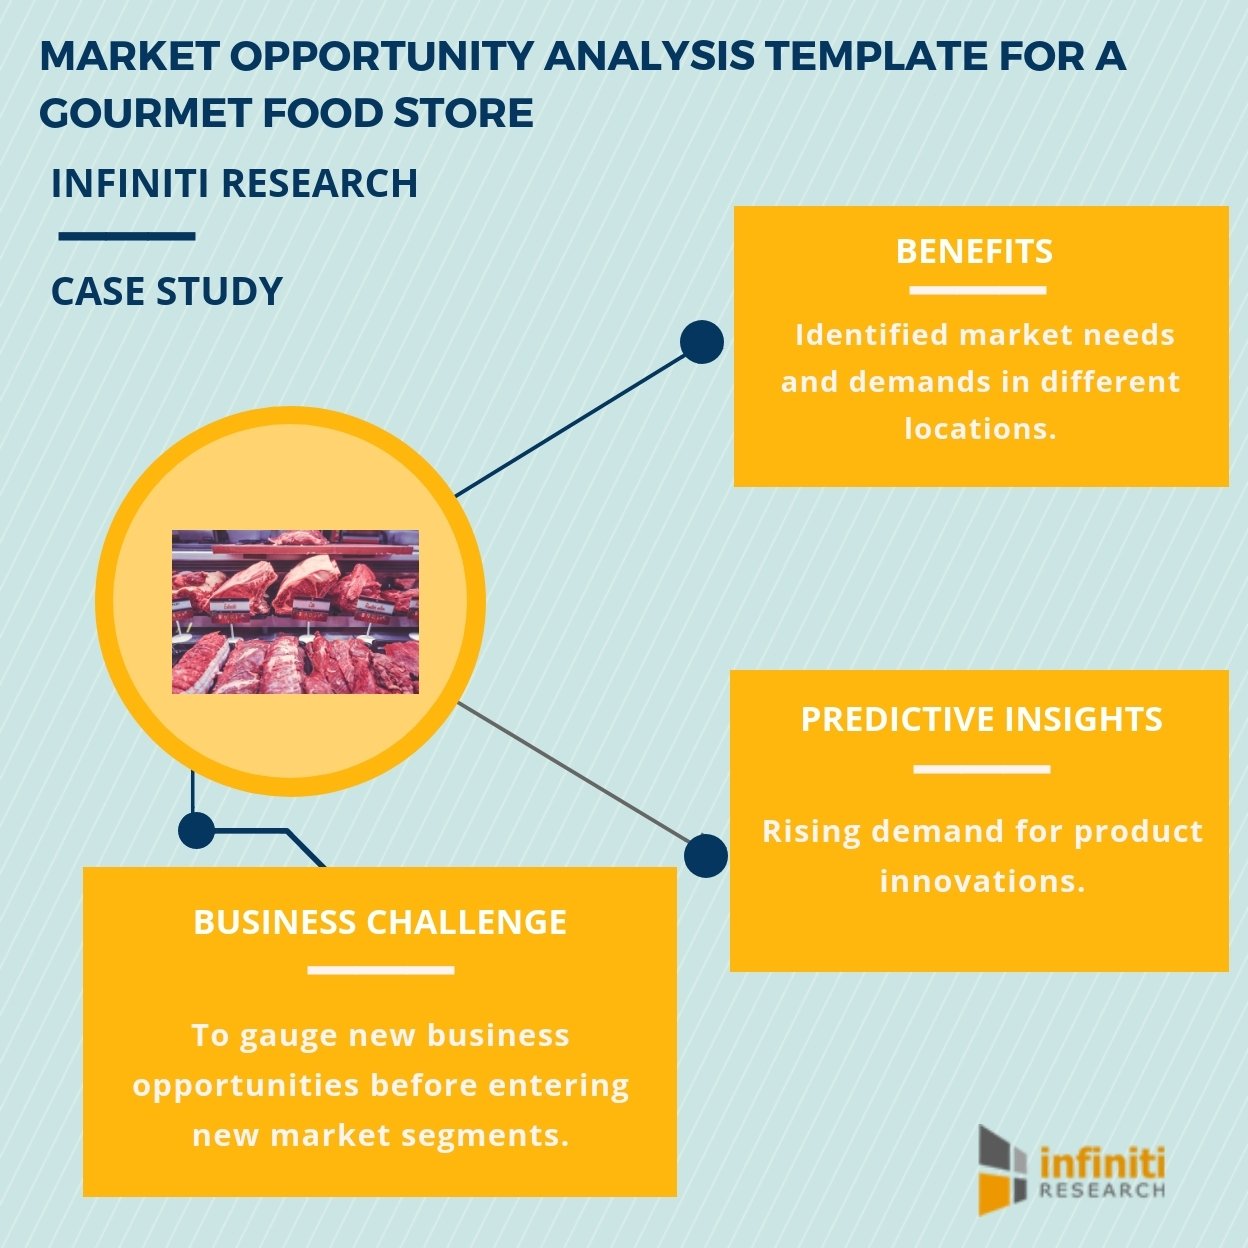 identifying investment opportunities with the help of a market